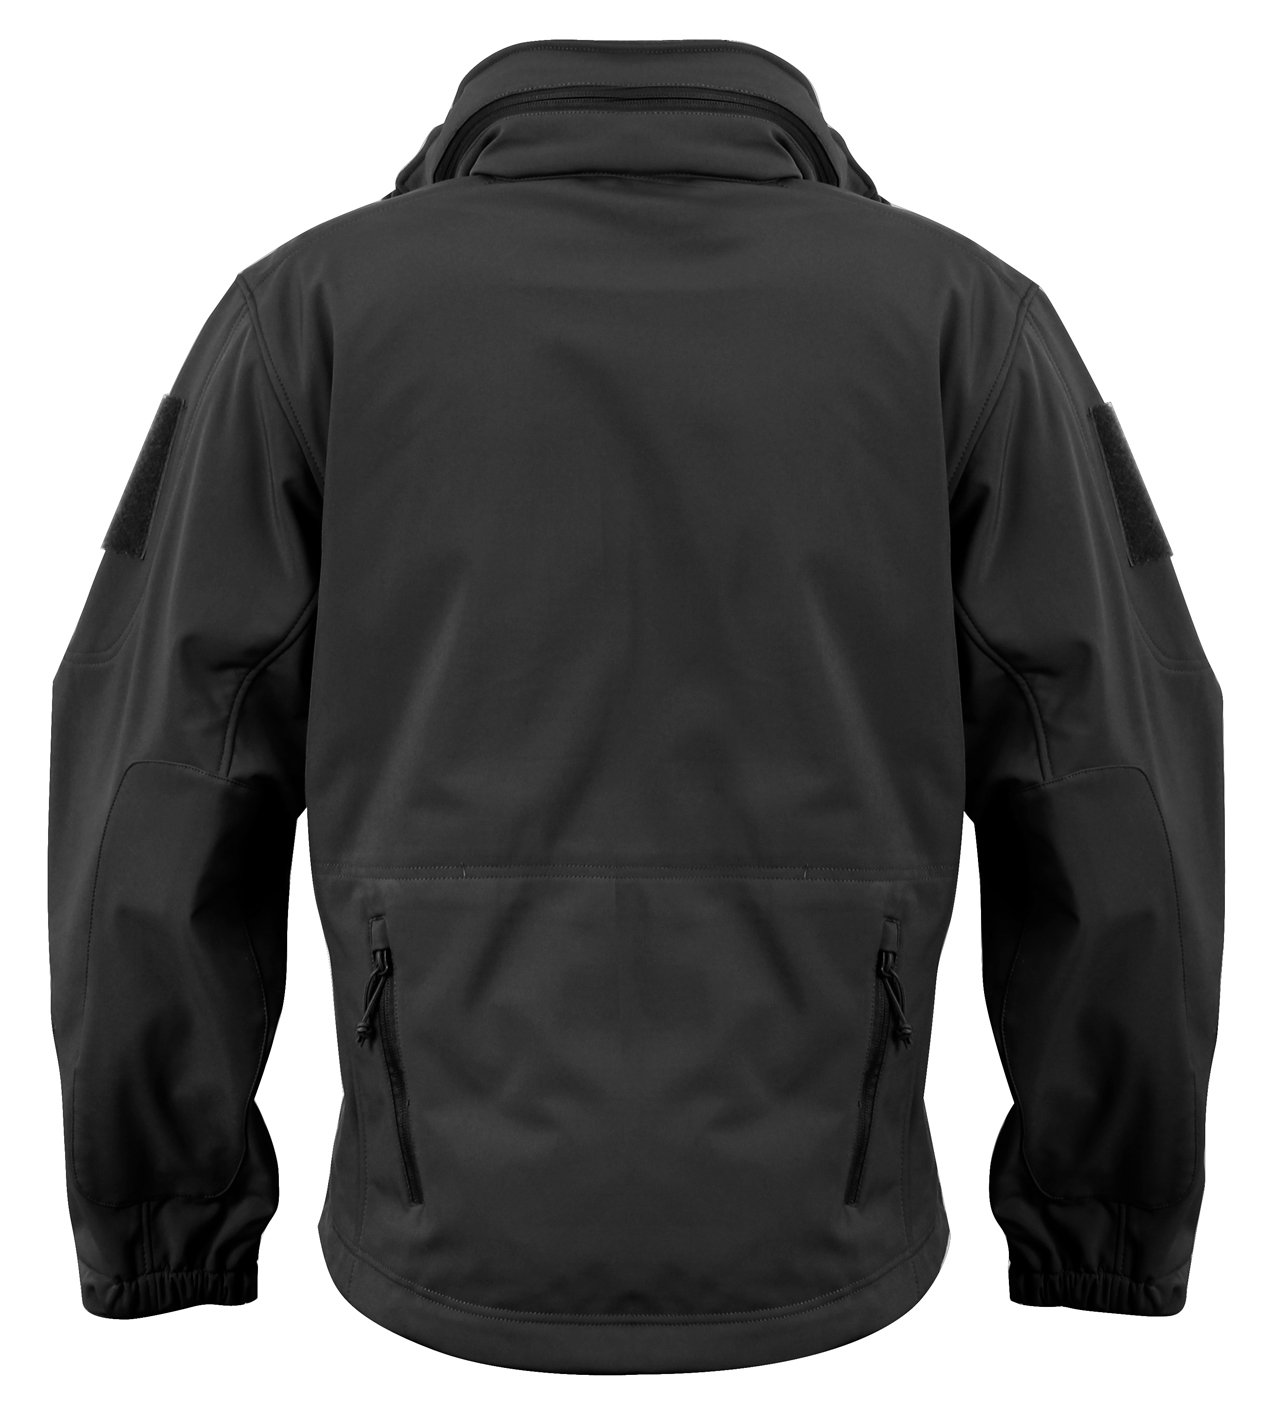 Rothco Special Ops Tactical Soft Shell Jacket, Black, 6X-Large